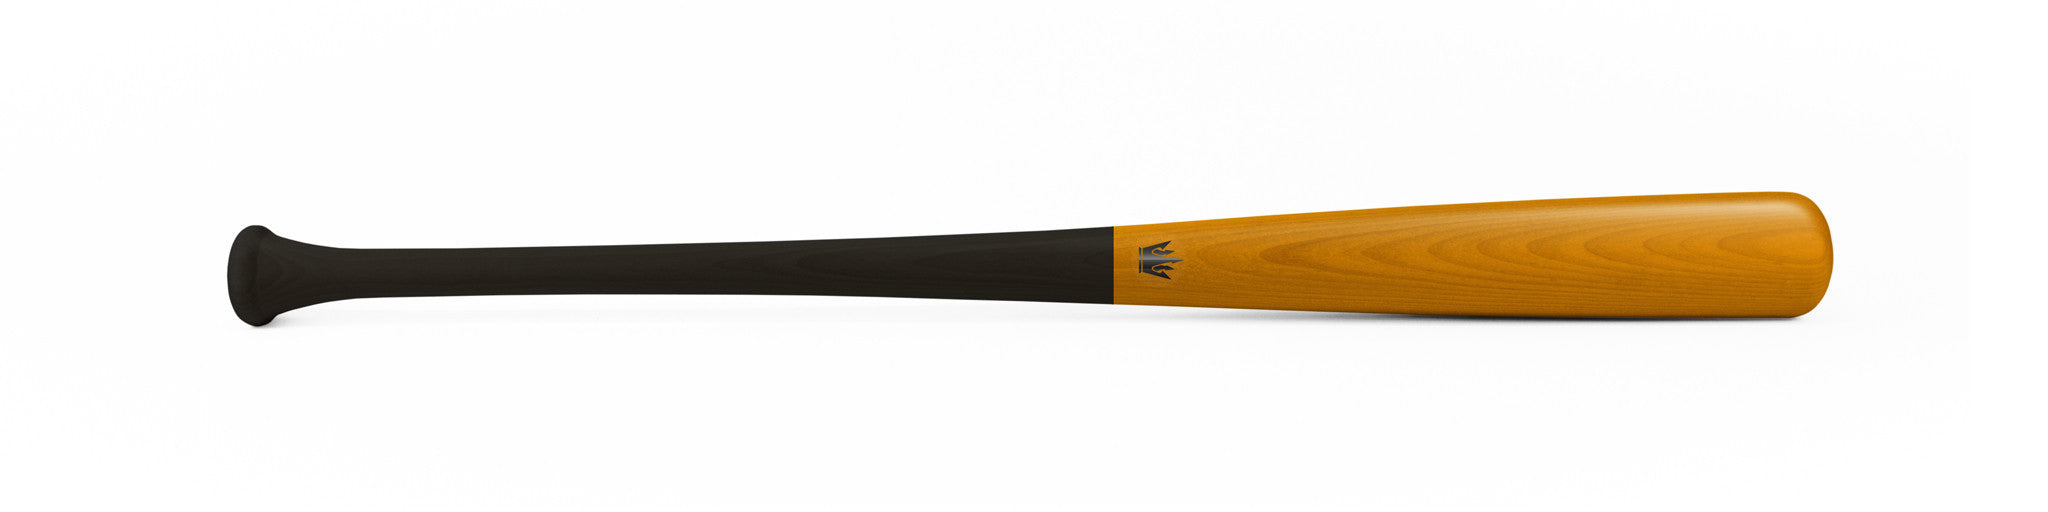 Wood bat - Maple model Y271 Black Gold - 5